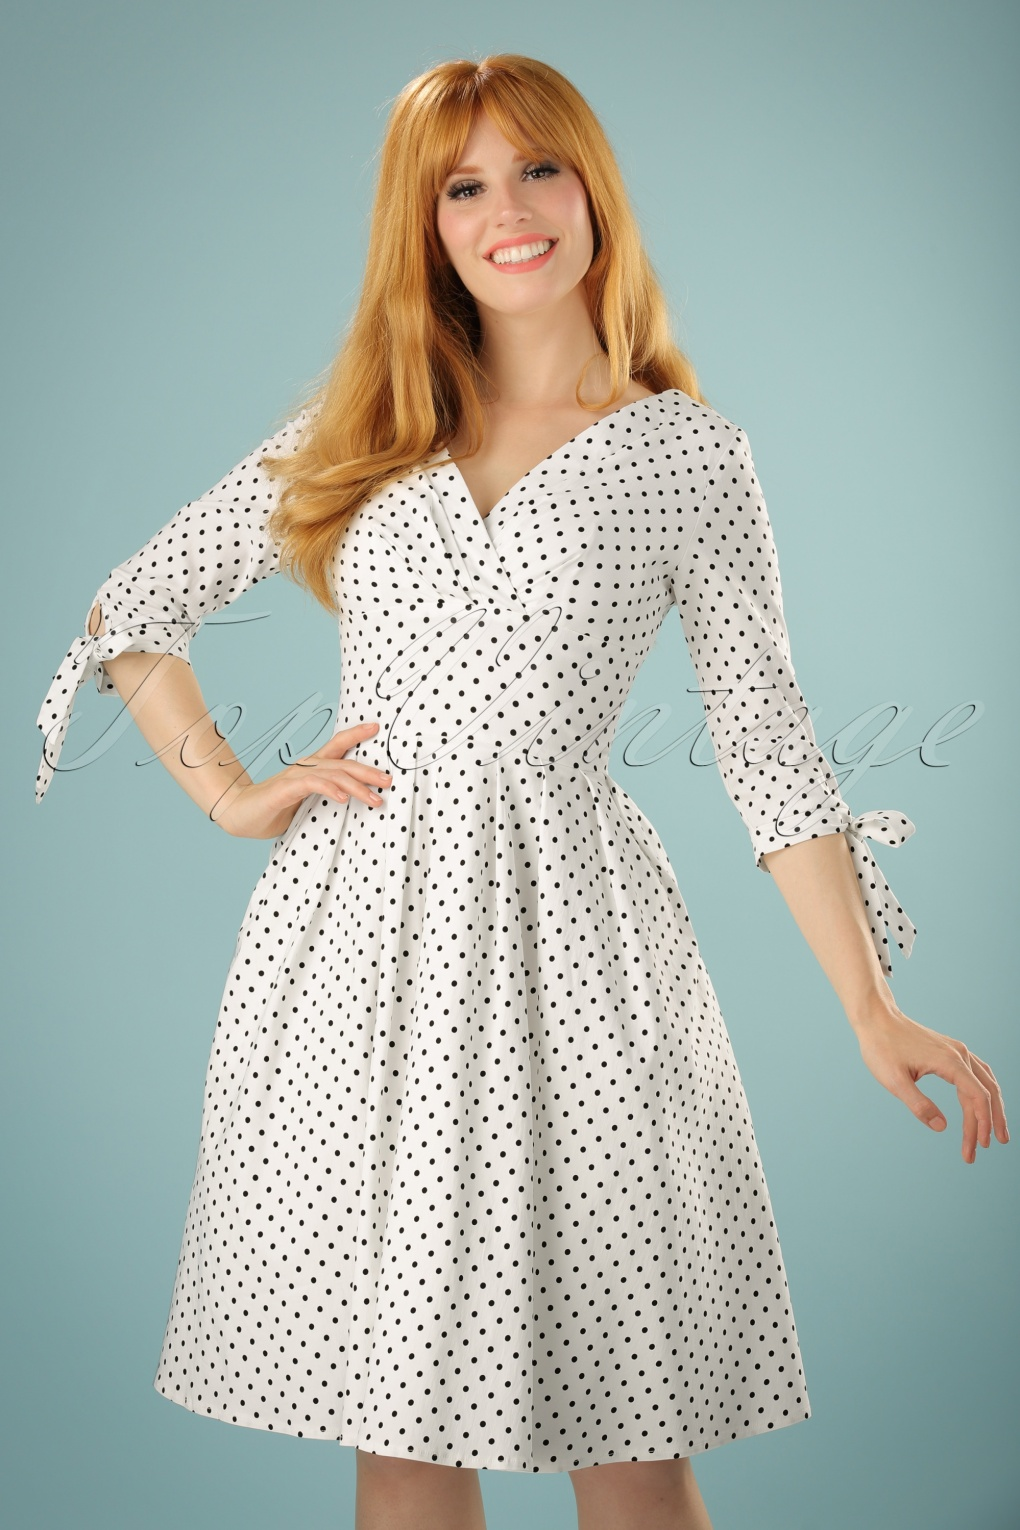 1940s Pinup Dresses for Sale 50s Diana Dotted Swing Dress in White £58.90 AT vintagedancer.com